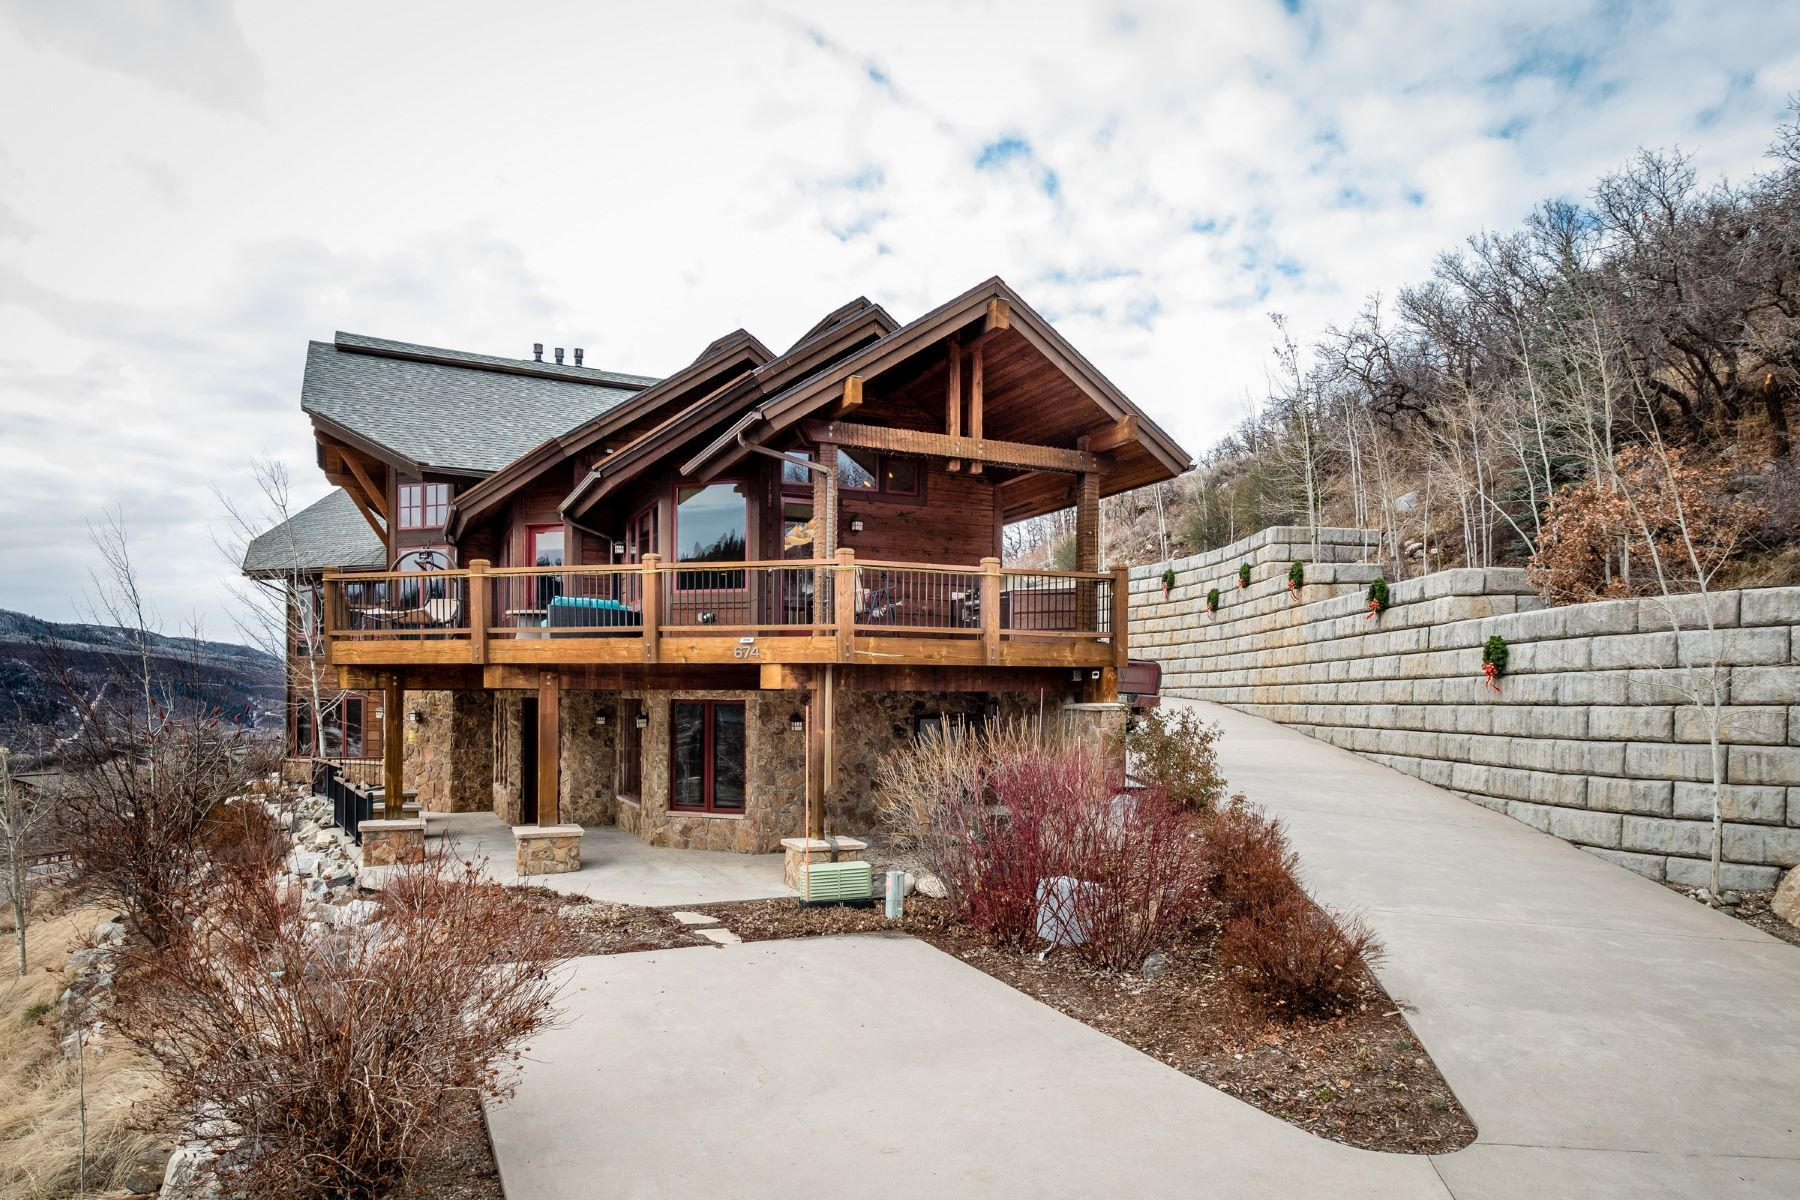 Single Family Home for Sale at Luxury Sanctuary Home 674 Steamboat Boulevard, Steamboat Springs, Colorado, 80487 United States